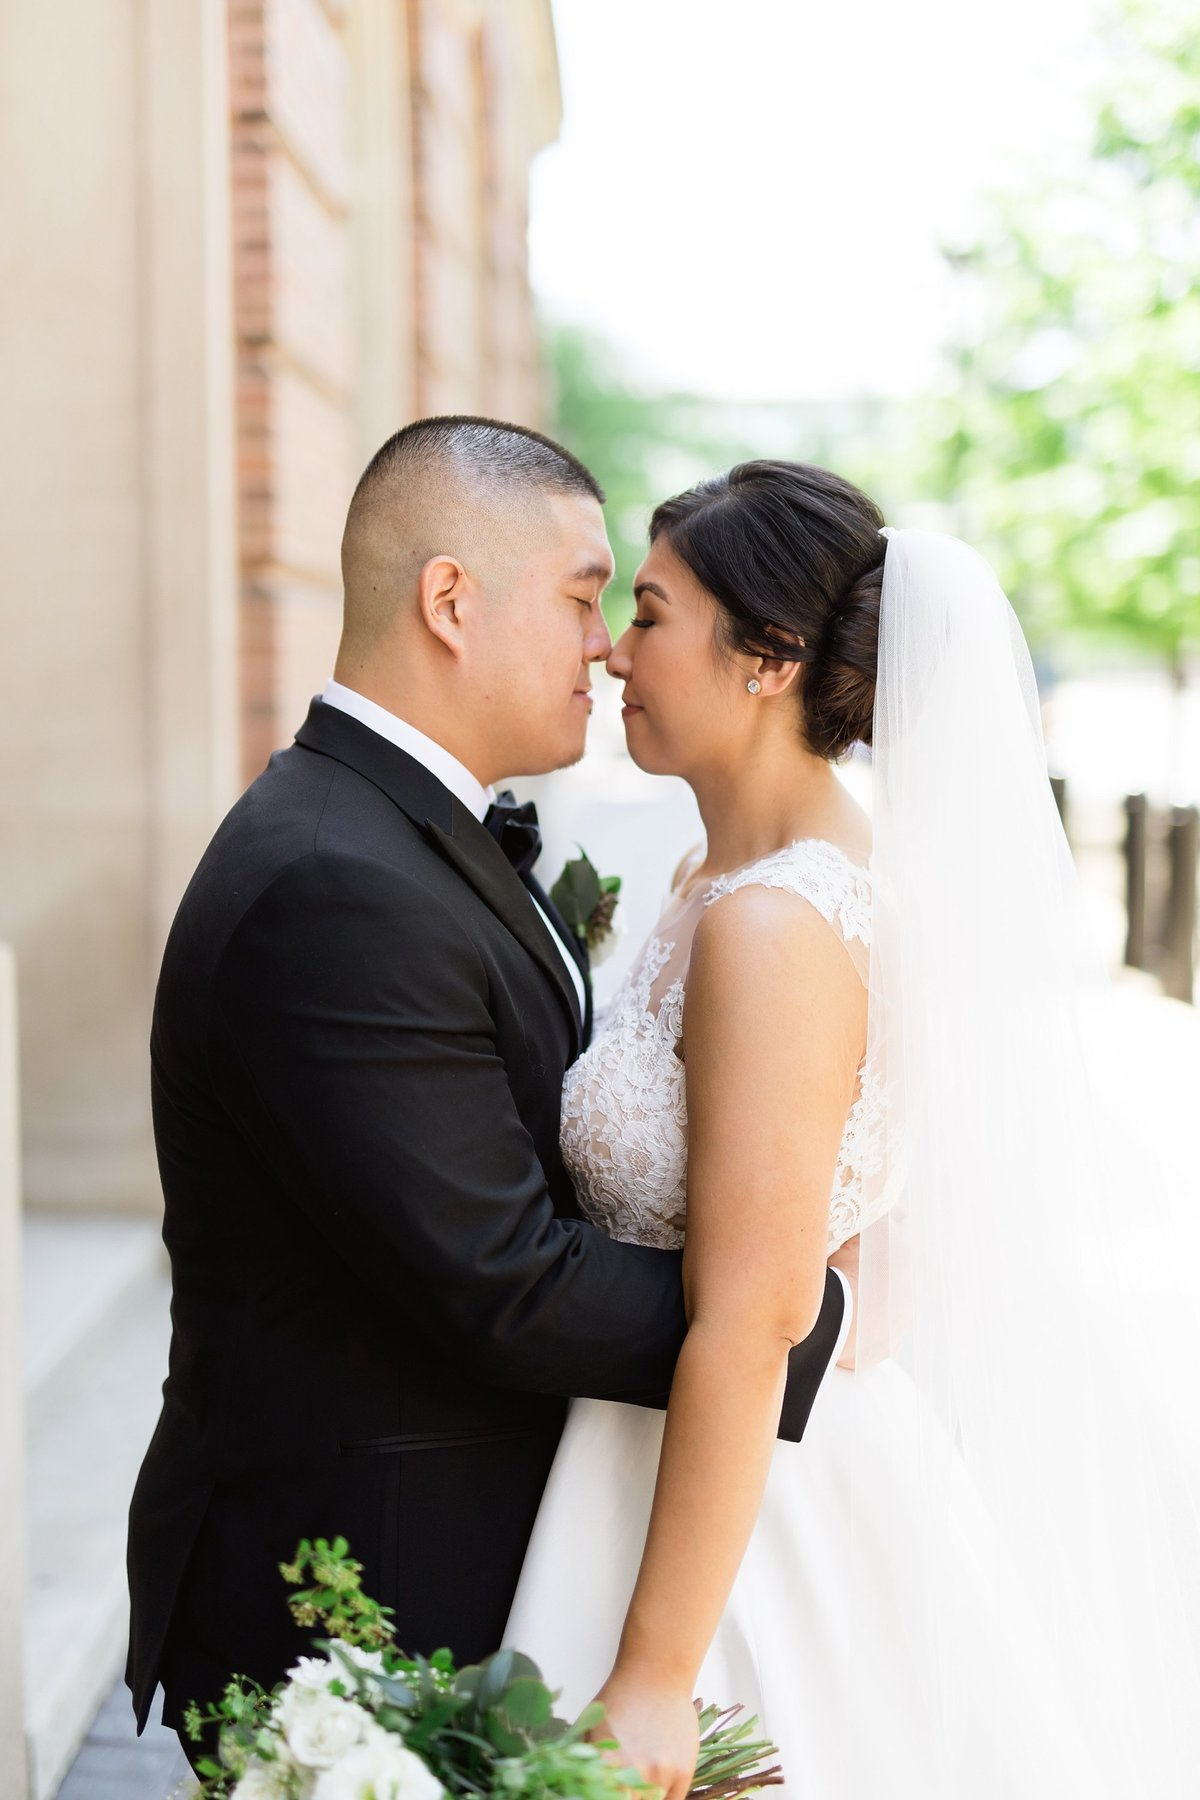 Jessica-Henry-Downtown-Chicago-Wedding-2018-Breanne-Rochelle-Photography54